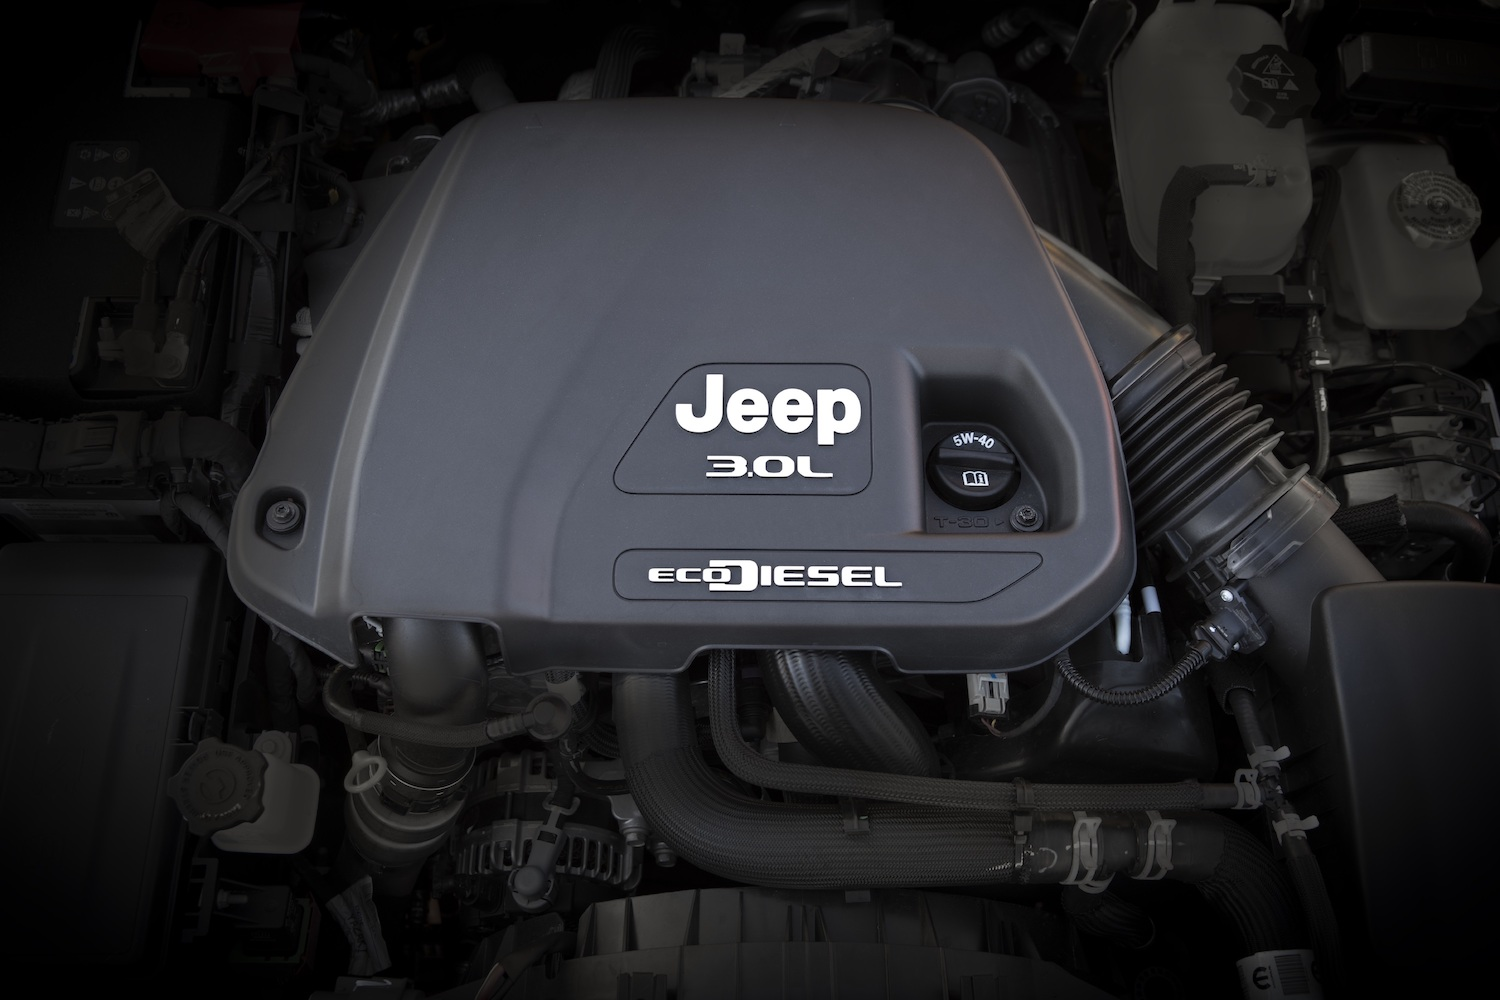 The First Diesel Powered Jeep Wrangler Is Expensive But Good